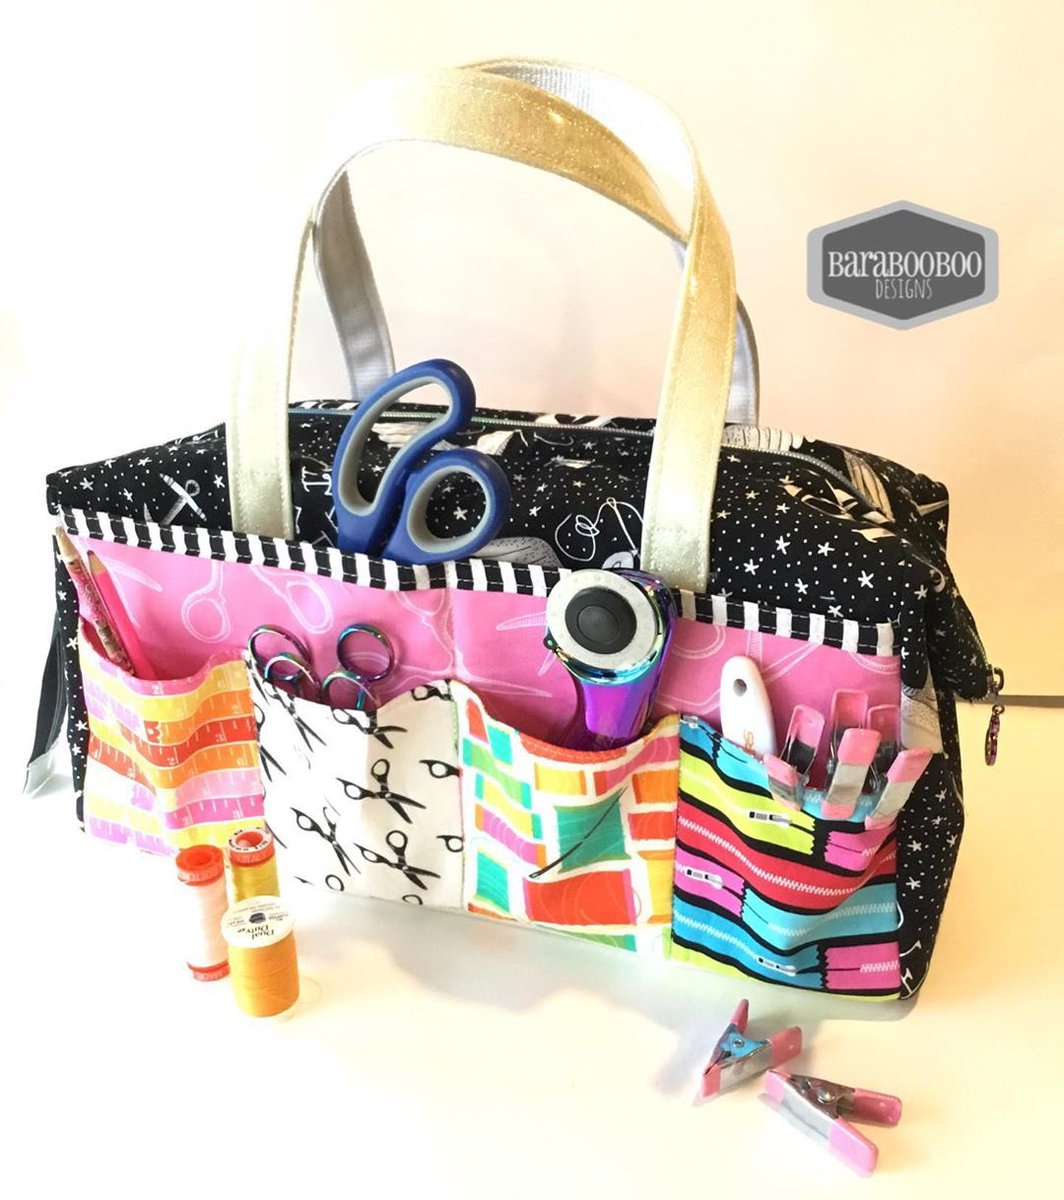 "barabooboo_designs bought her daughter her first sewing machine for Christmas and also made her an amazing Sheffield tool bag for her tools! The Sheffield tool bag pattern is available as a PDF+video or as part of the ""His, Hers and Furs"" bundle. pic.twitter.com/i3C7Jv5jue"